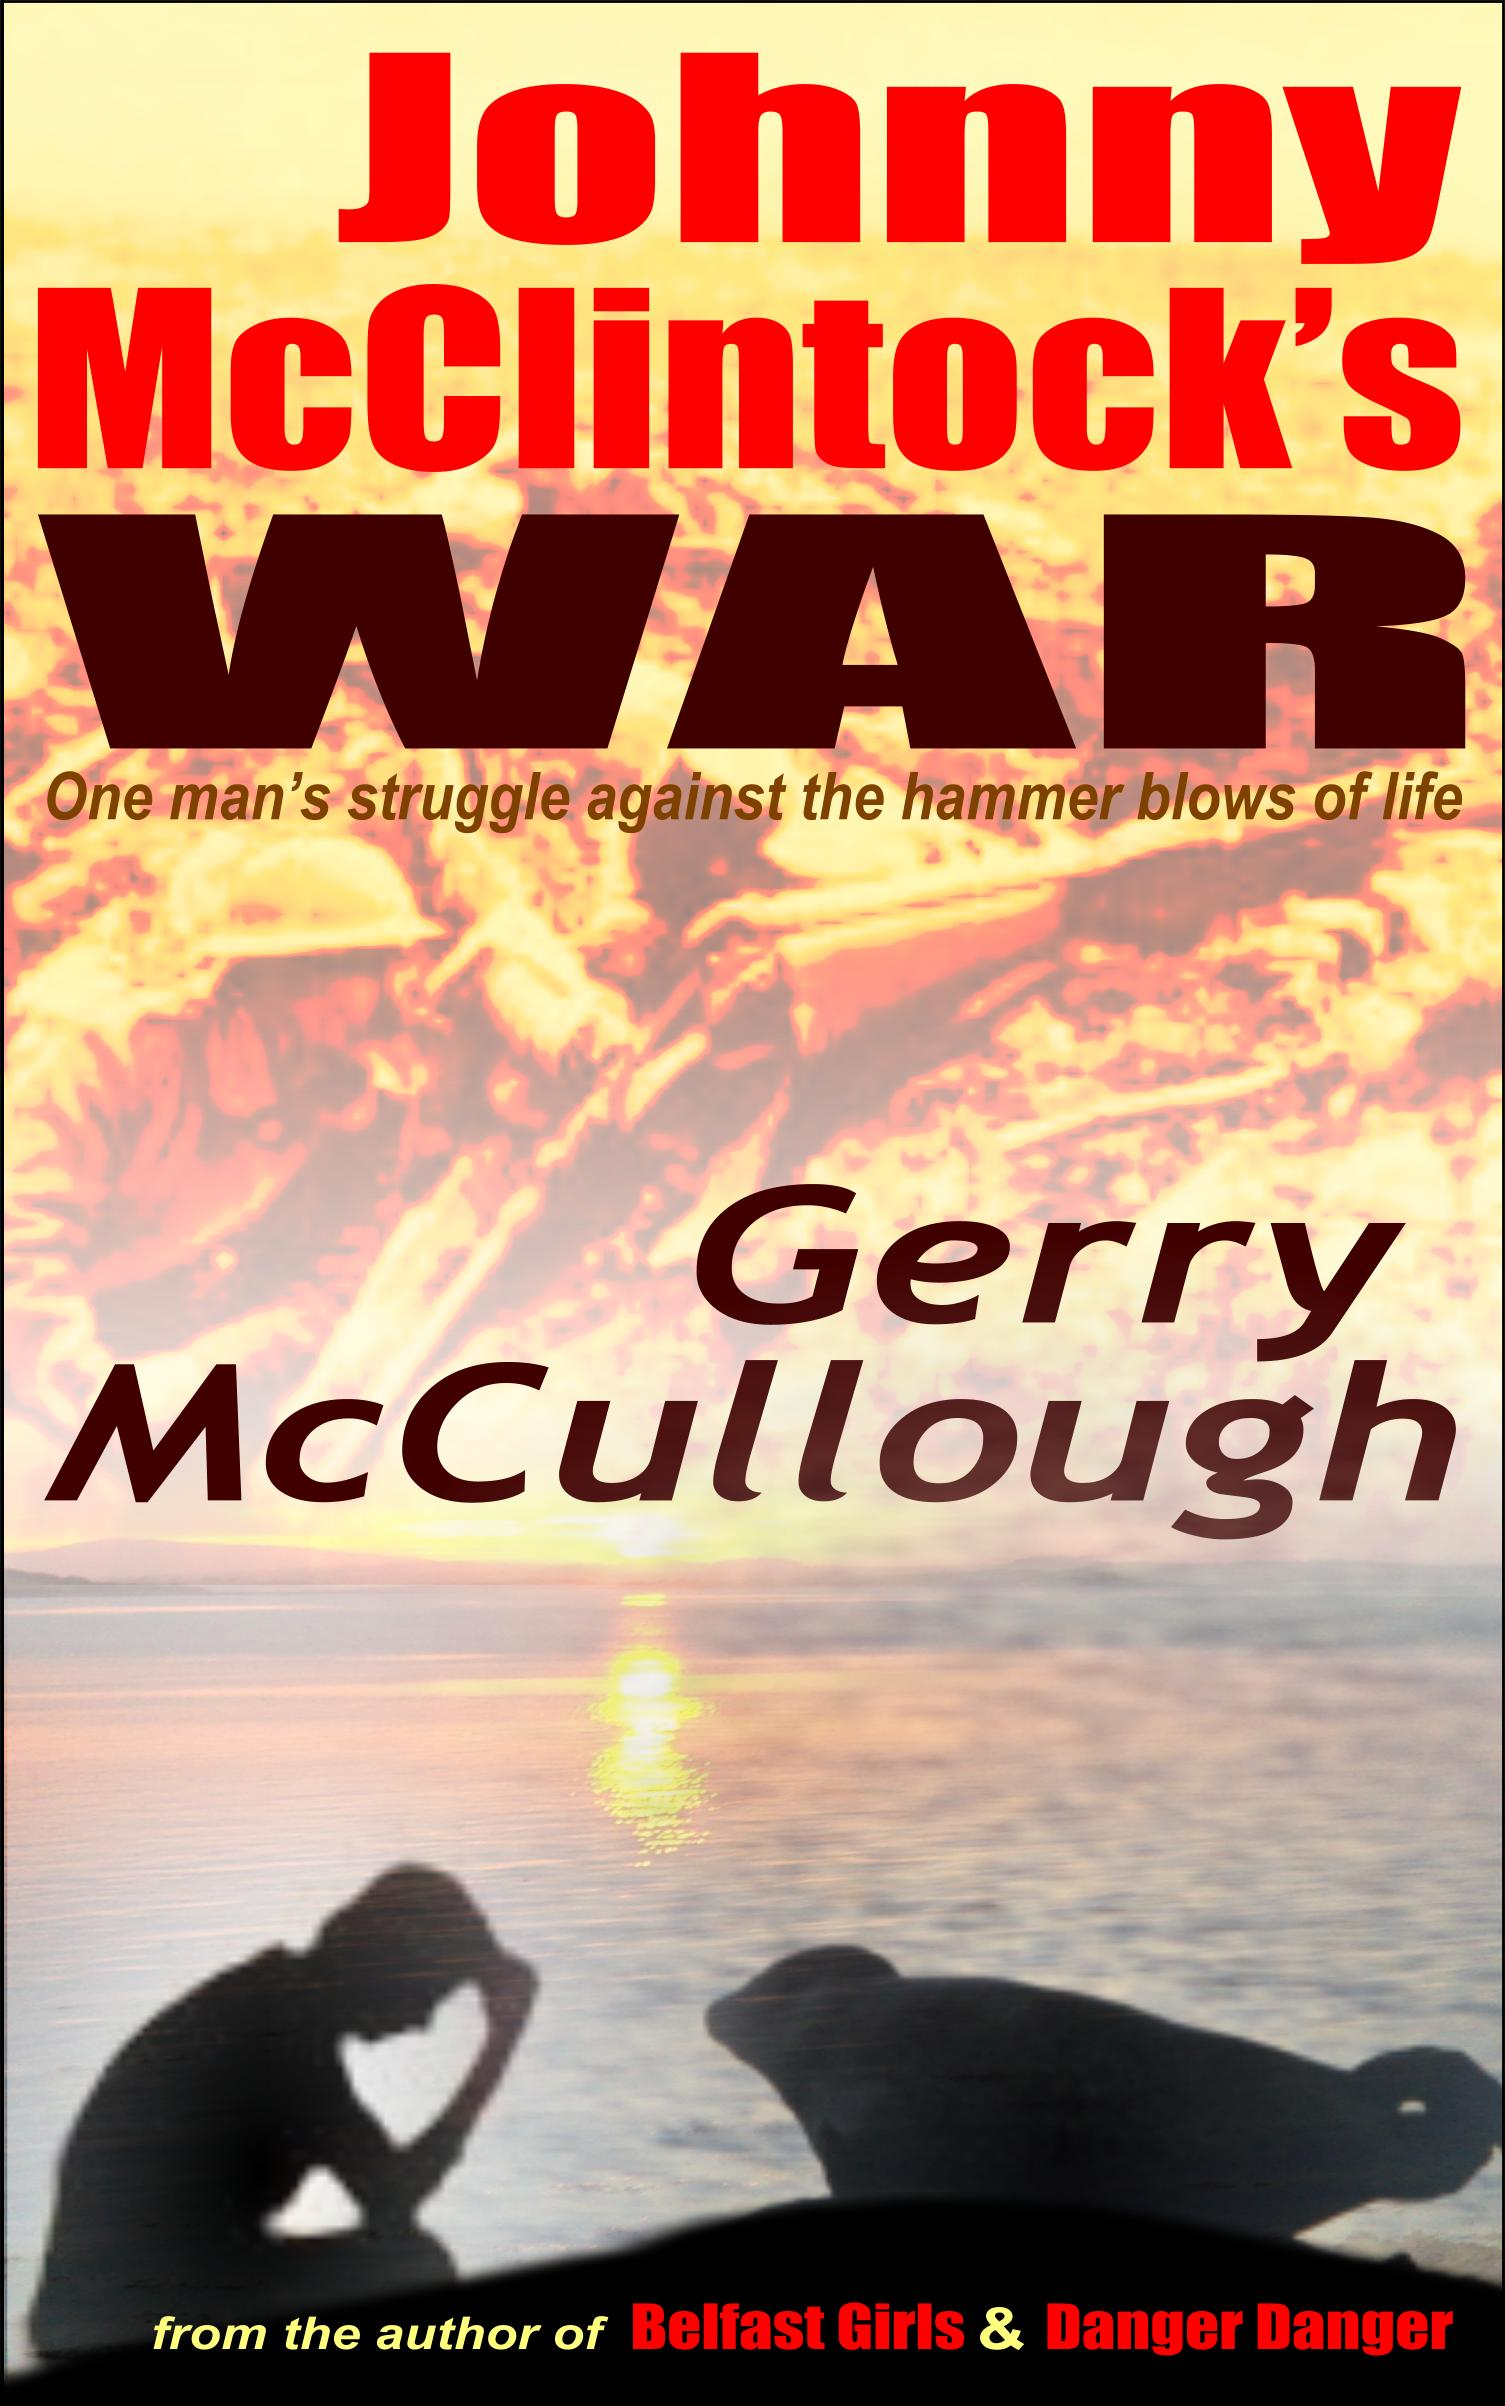 Buy Johnny McClintock's War from Amazon & other outlets